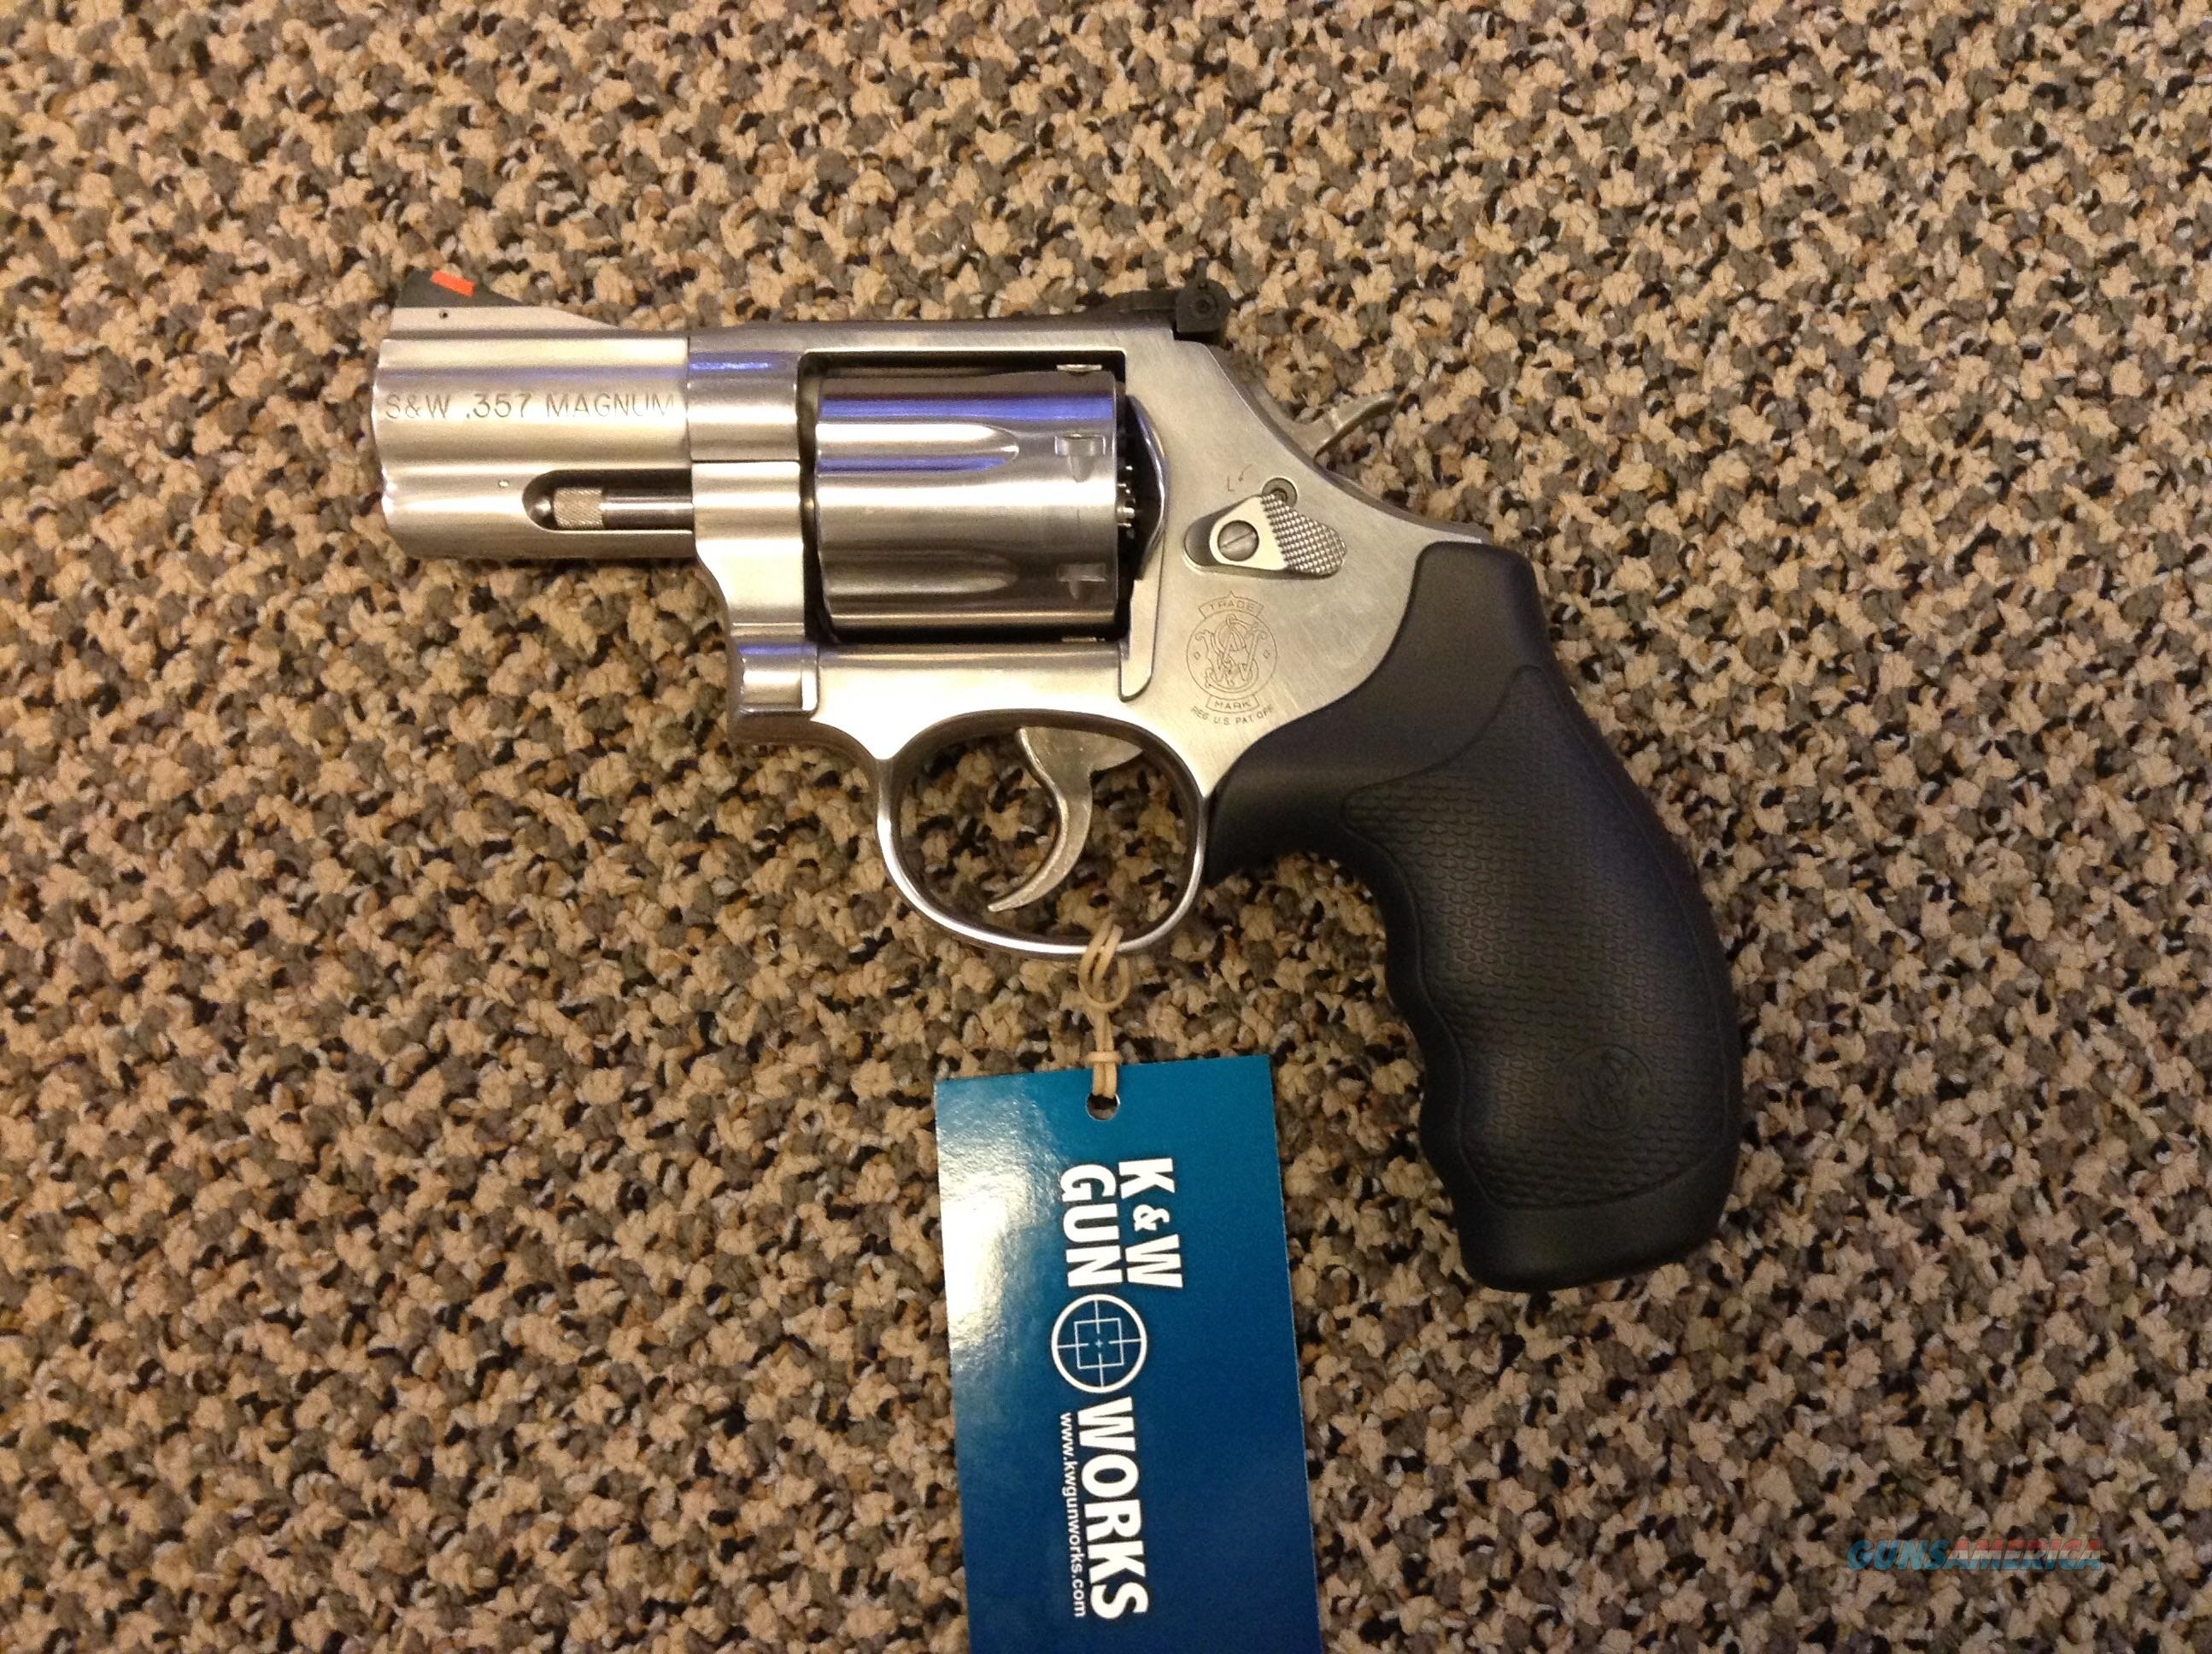 S&W MODEL 686 PLUS 7 SHOT .357 MAGNUM 2 3/4 BBL NEW IN THE BOX  Guns > Pistols > Smith & Wesson Revolvers > Full Frame Revolver